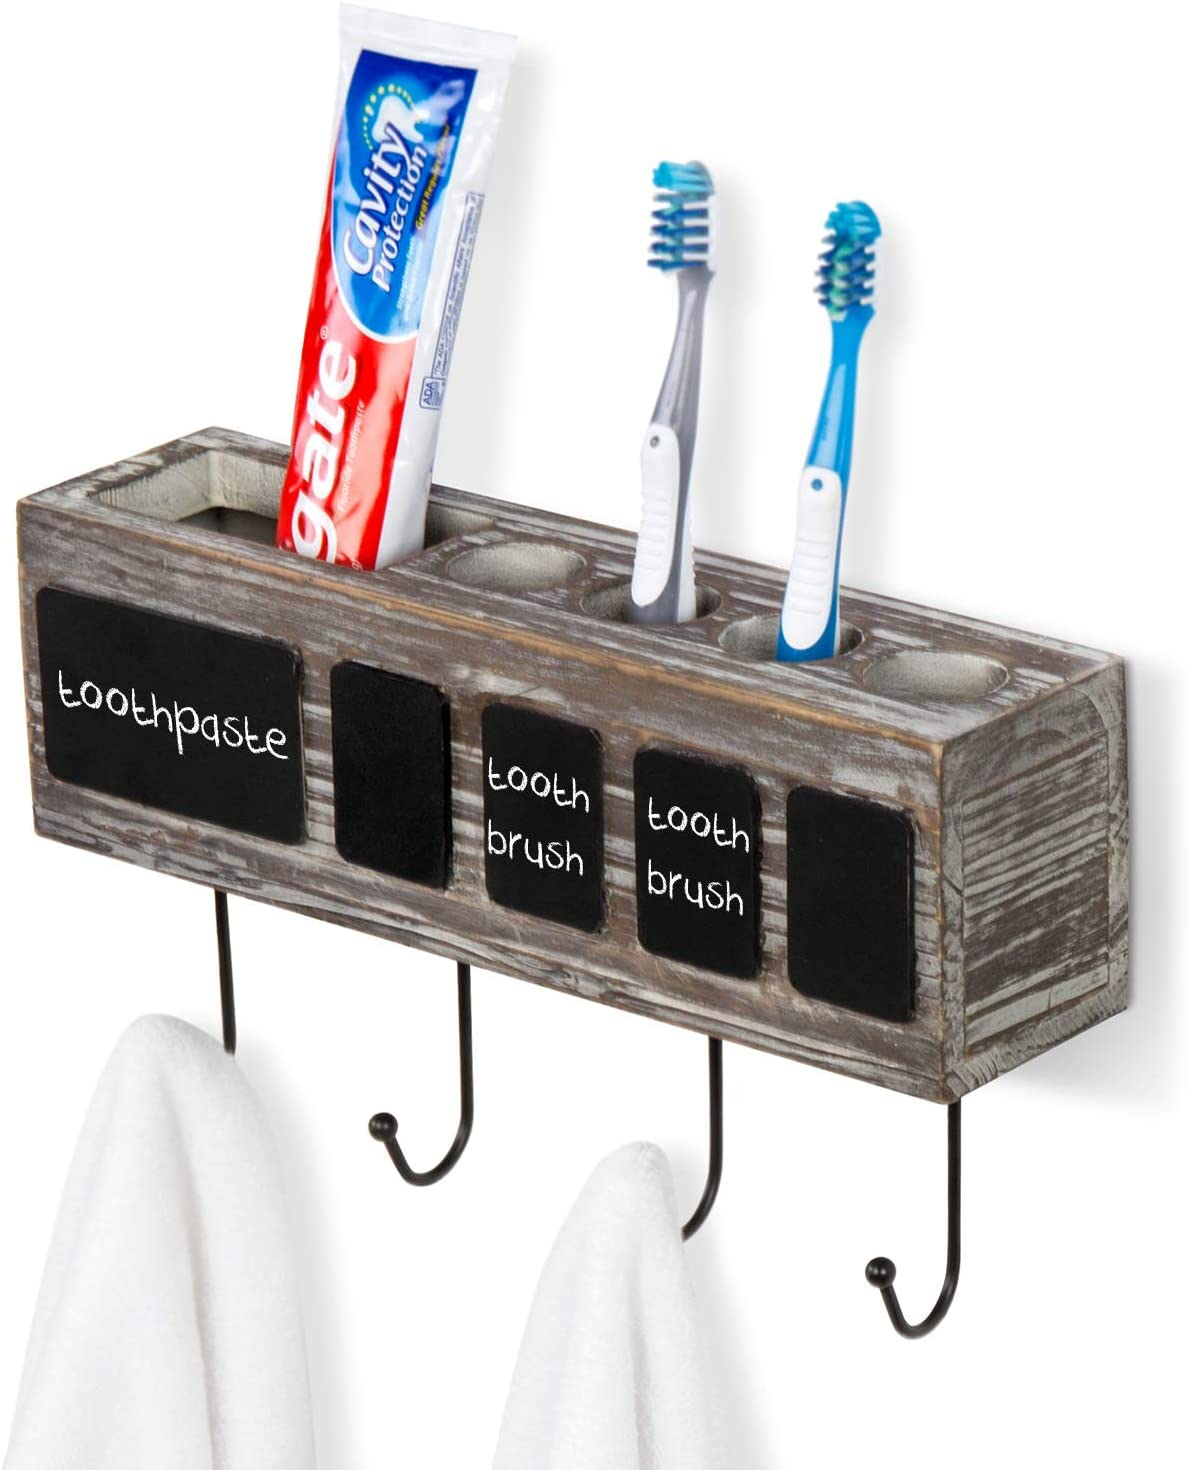 MyGift Rustic Torched Wood Wall Mounted Electric Toothbrush and Toothpaste Holder Organizer Rack with Chalkboards and 4 Towel Hooks